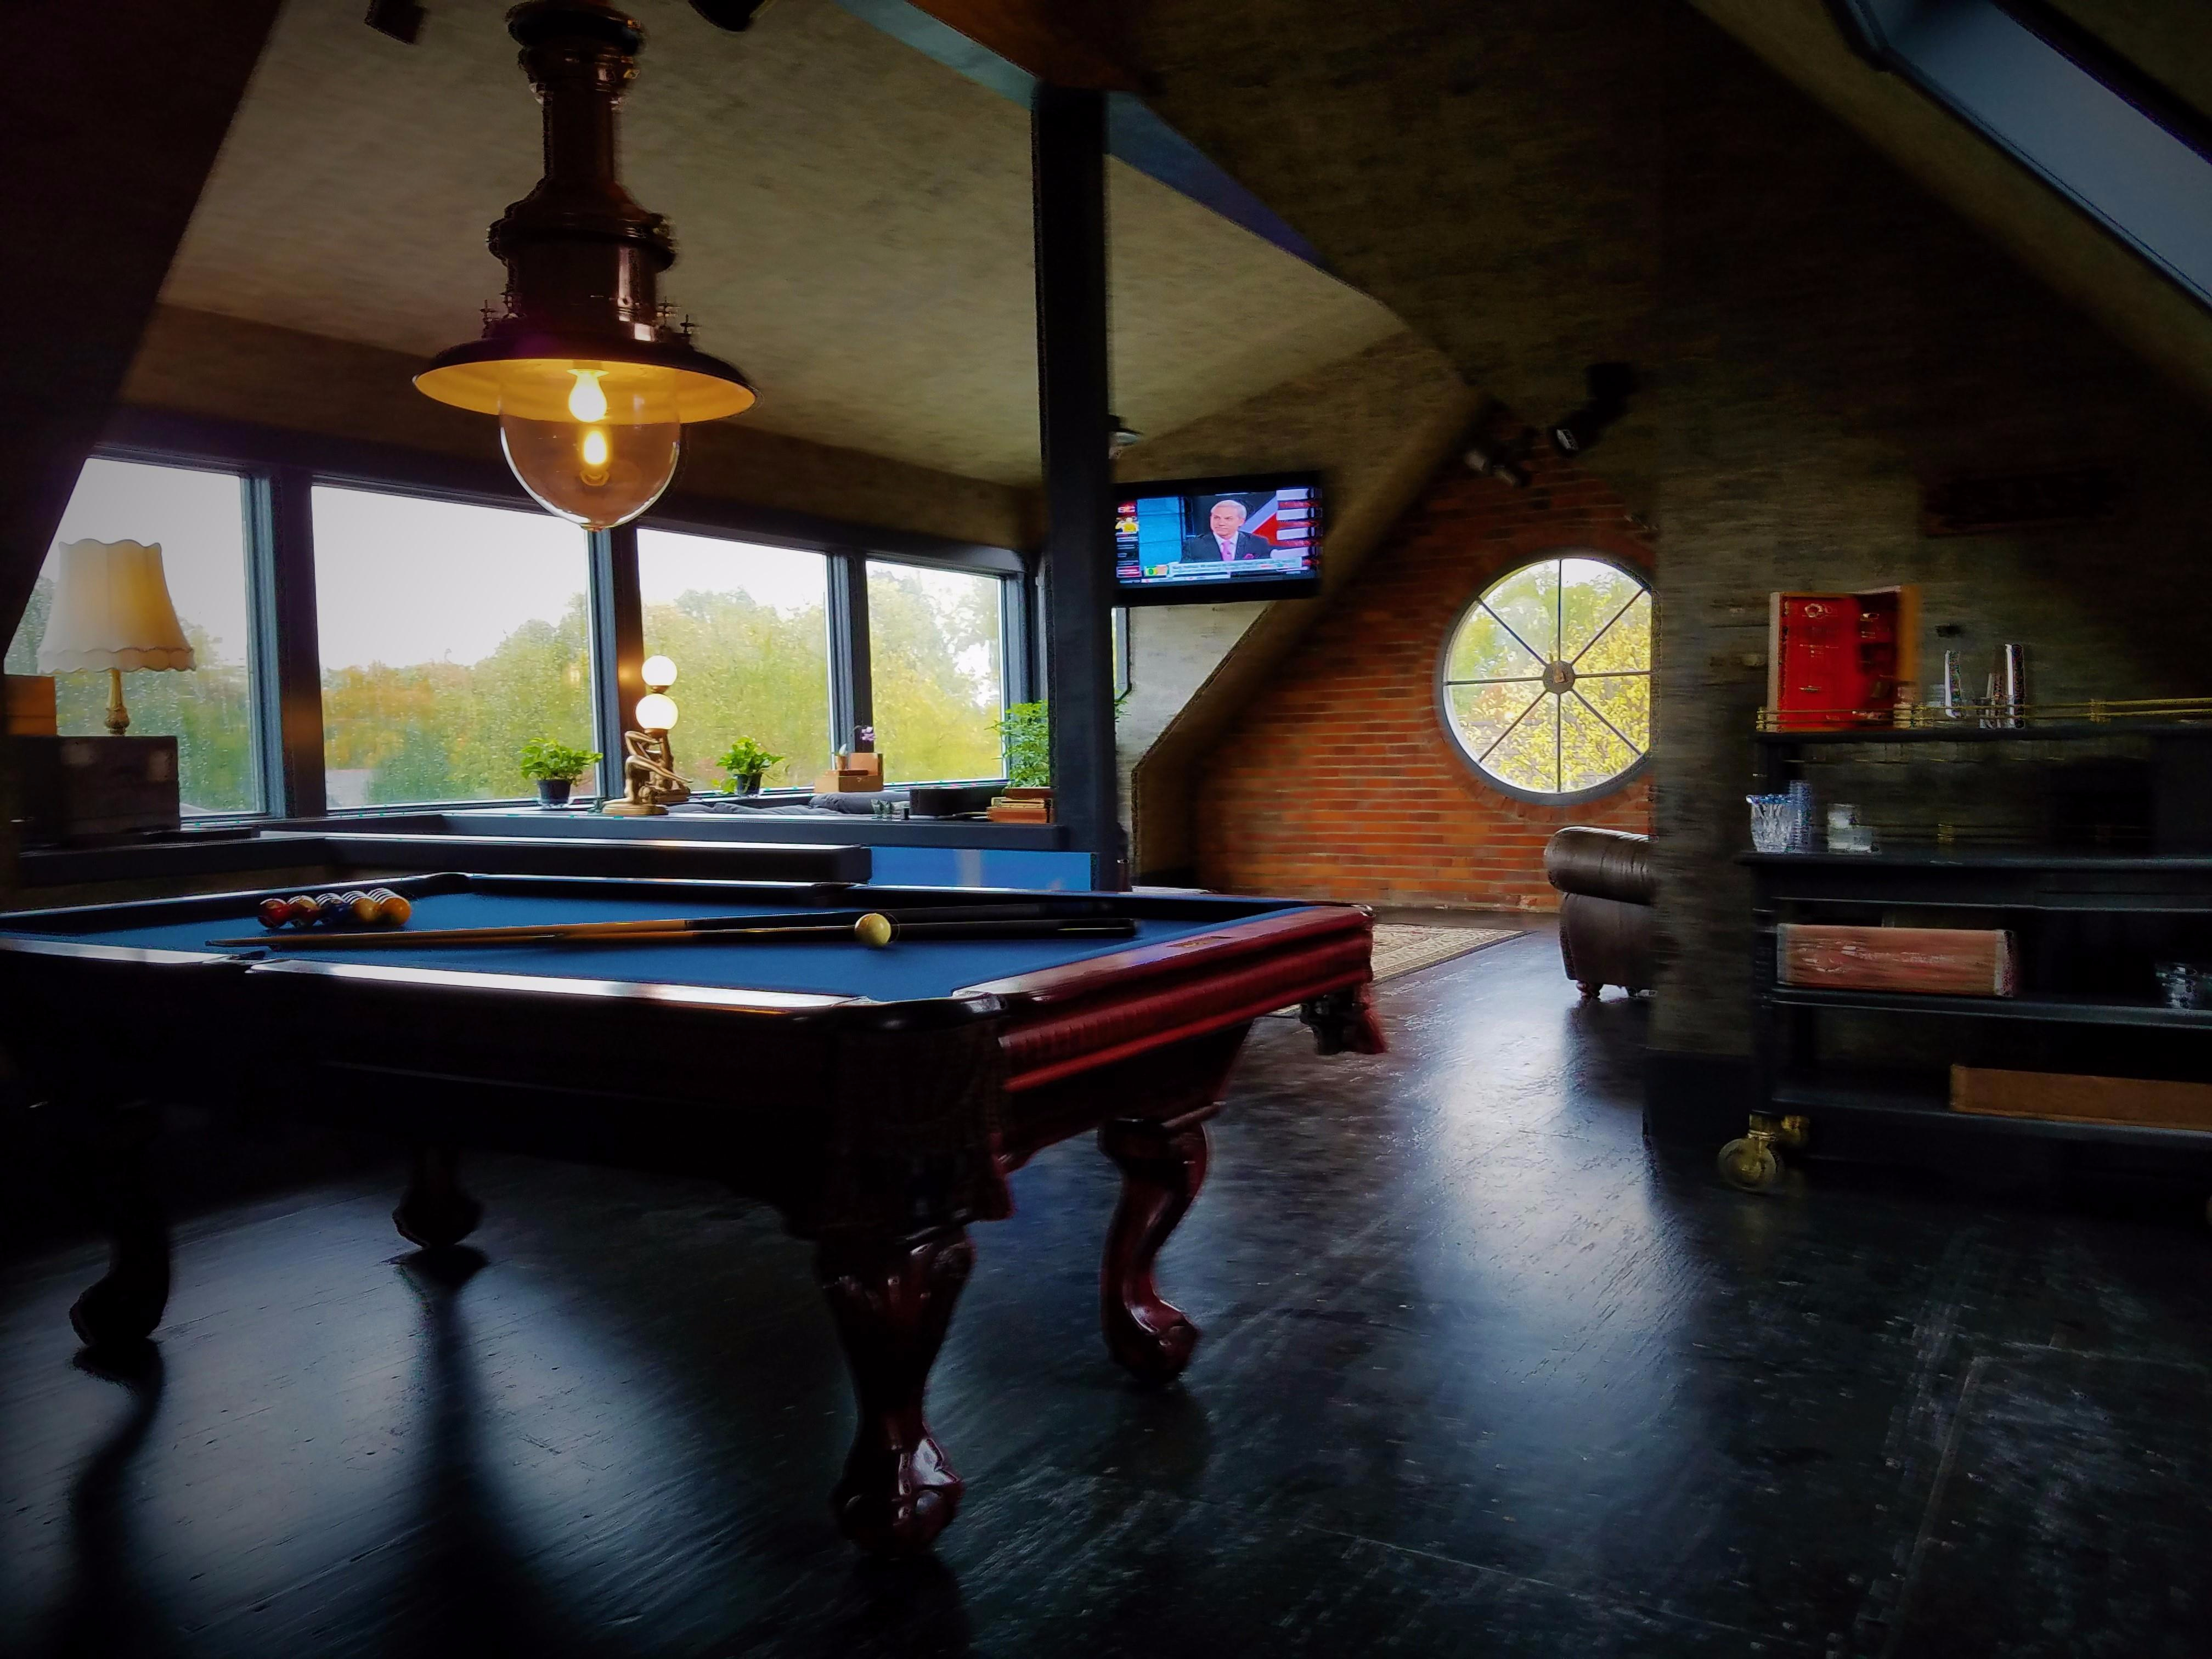 Goodfellows Tonsorial Parlor In Columbus OH Vagaro - Pool table movers columbus ohio